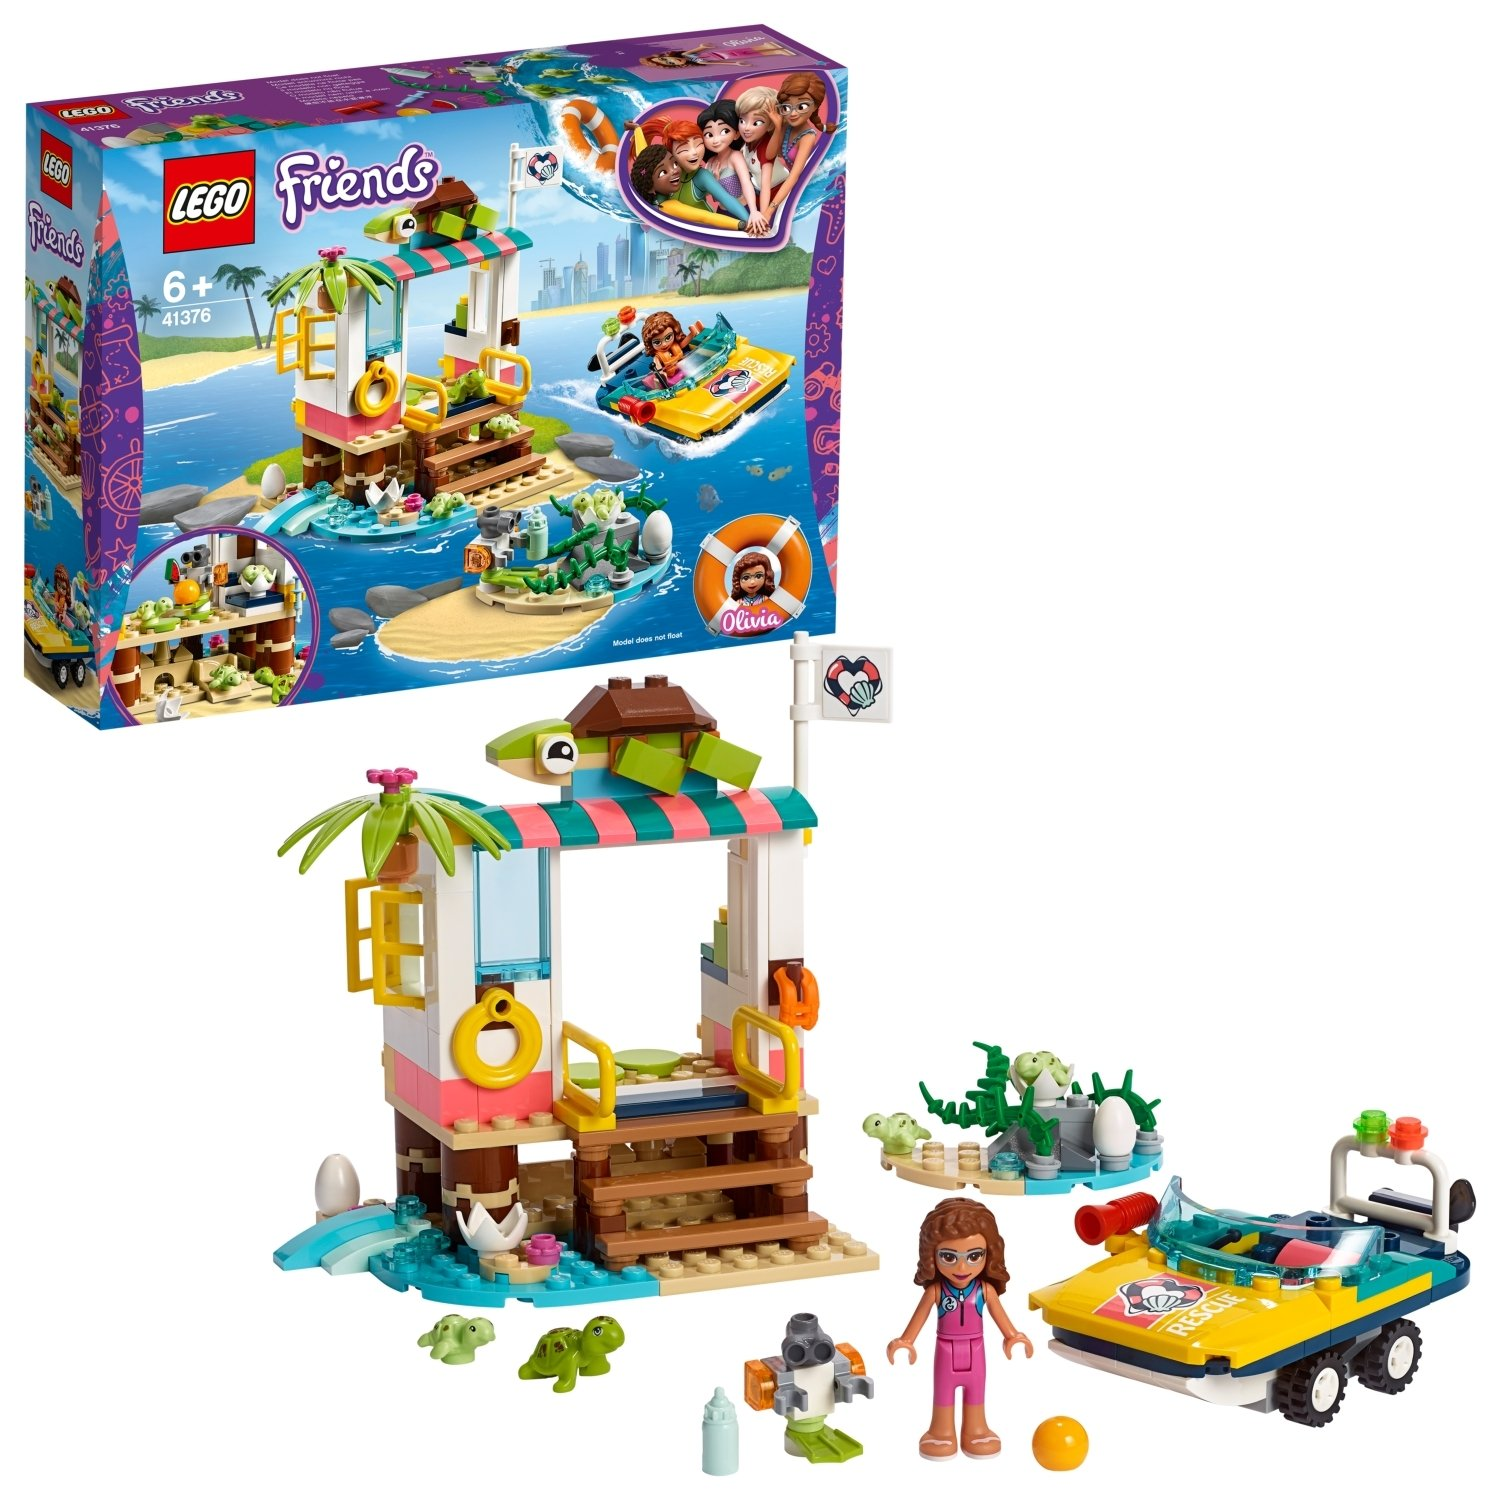 LEGO Friends Turtle Rescue Mission Playset - 41376